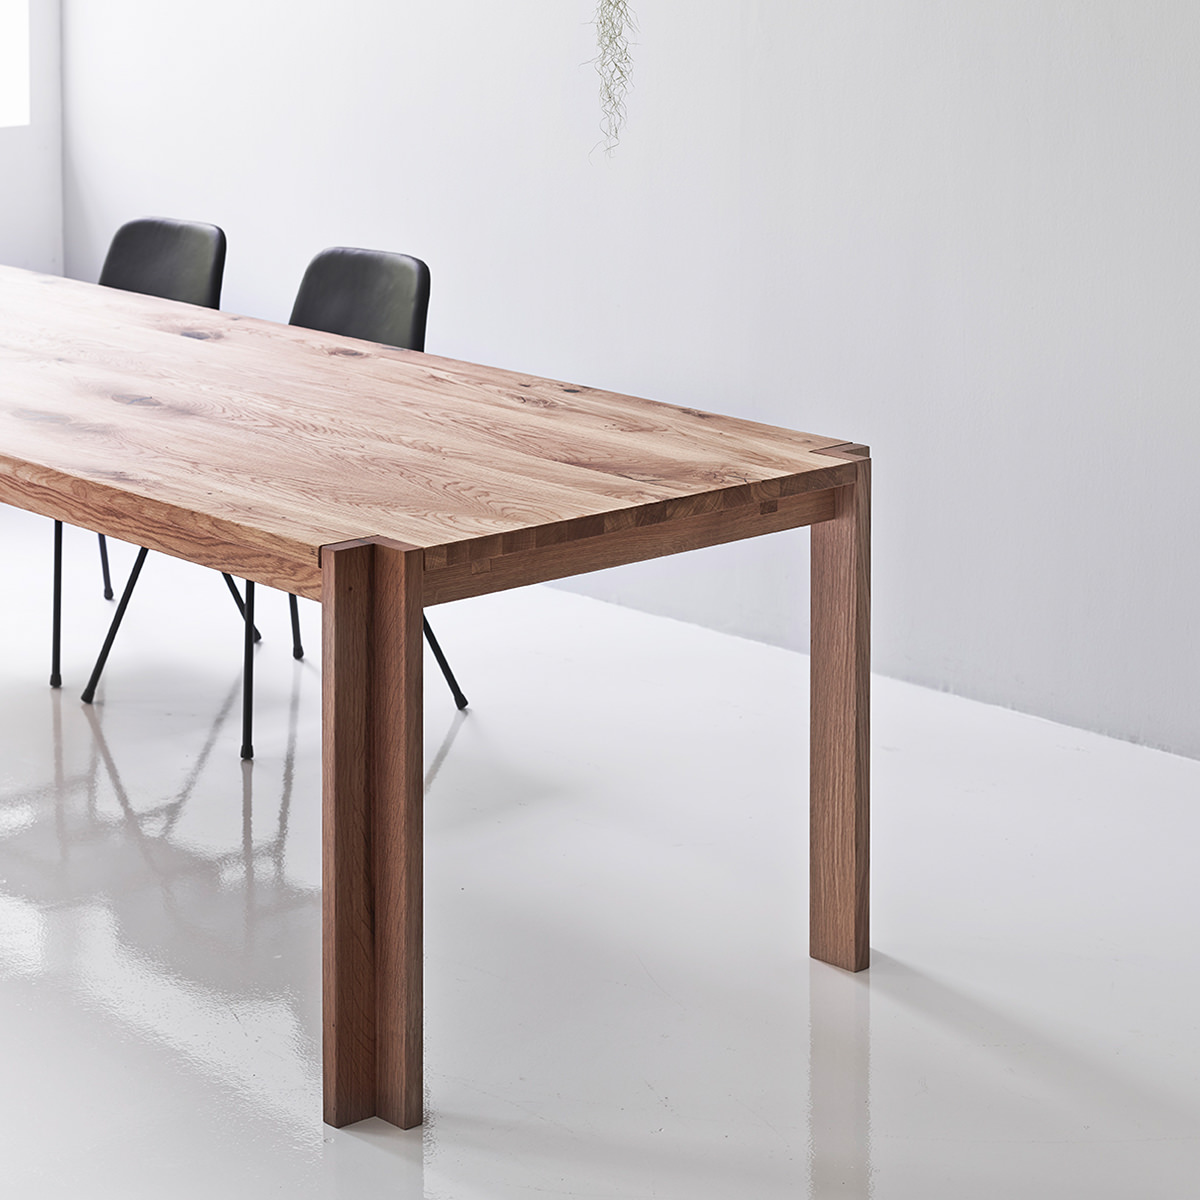 UTZON table 001